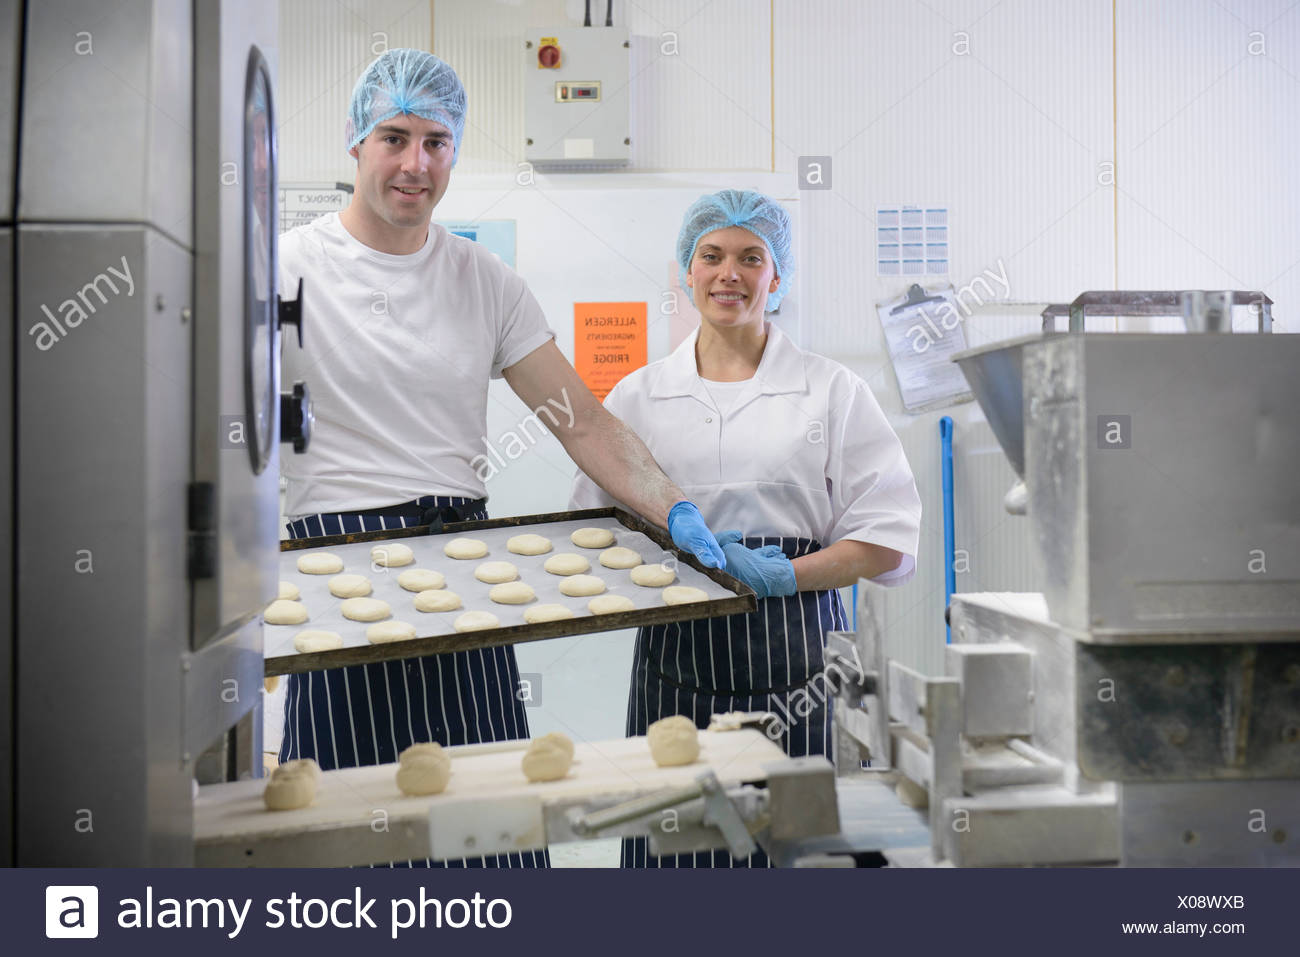 Bakers holding tray of prepared dough, portrait - Stock Image